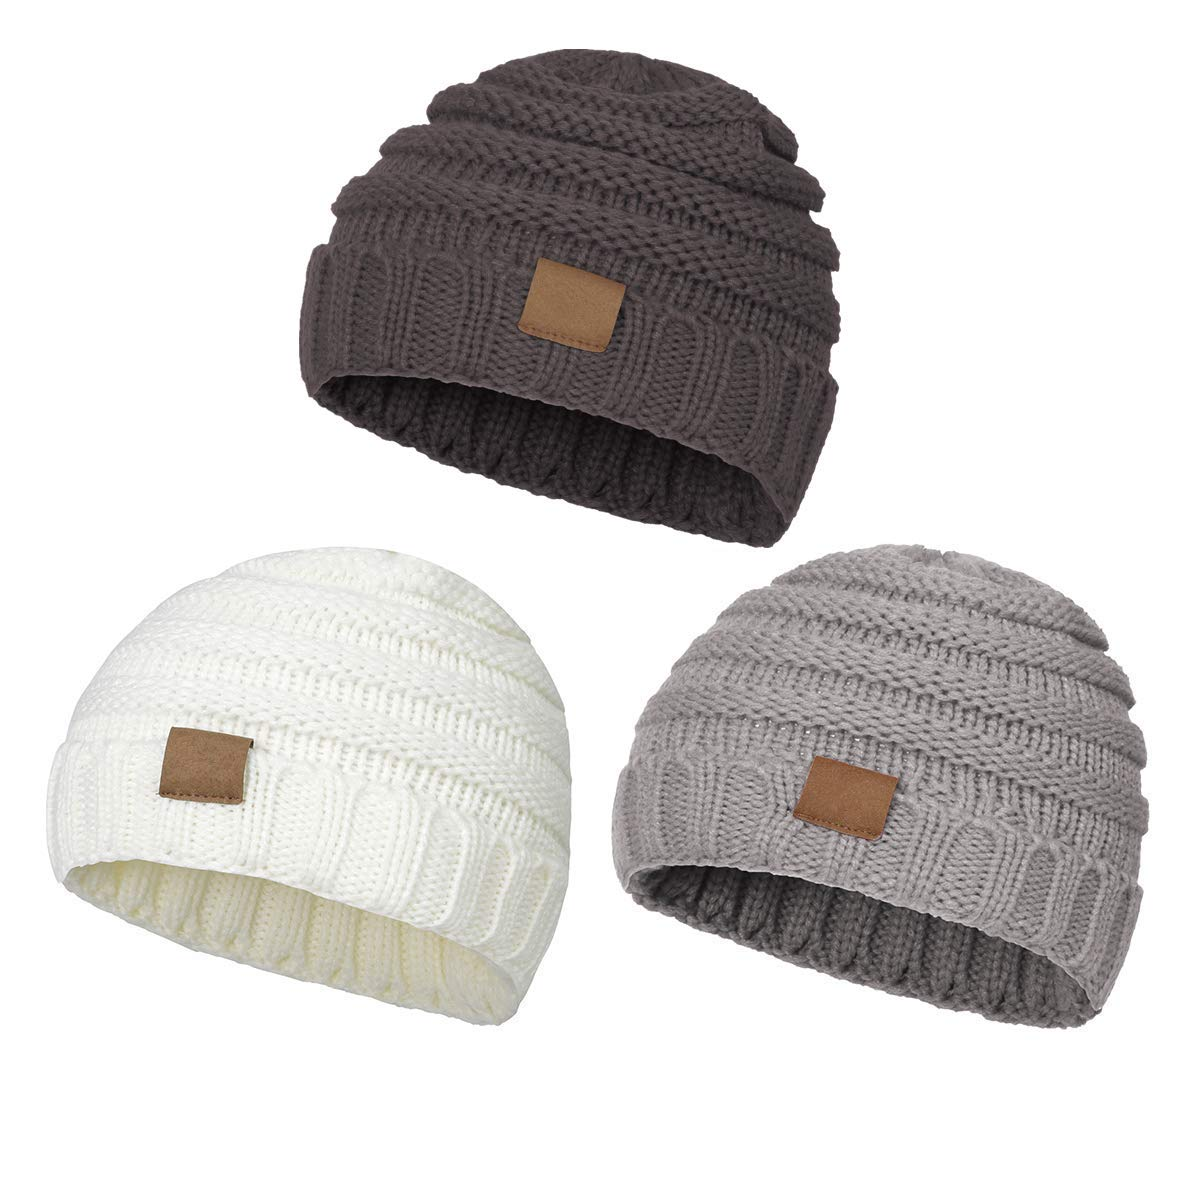 Aigemi Kids Baby Toddler Cable Ribbed Knit Children/'s Winter Hat Beanie Cap Light Grey